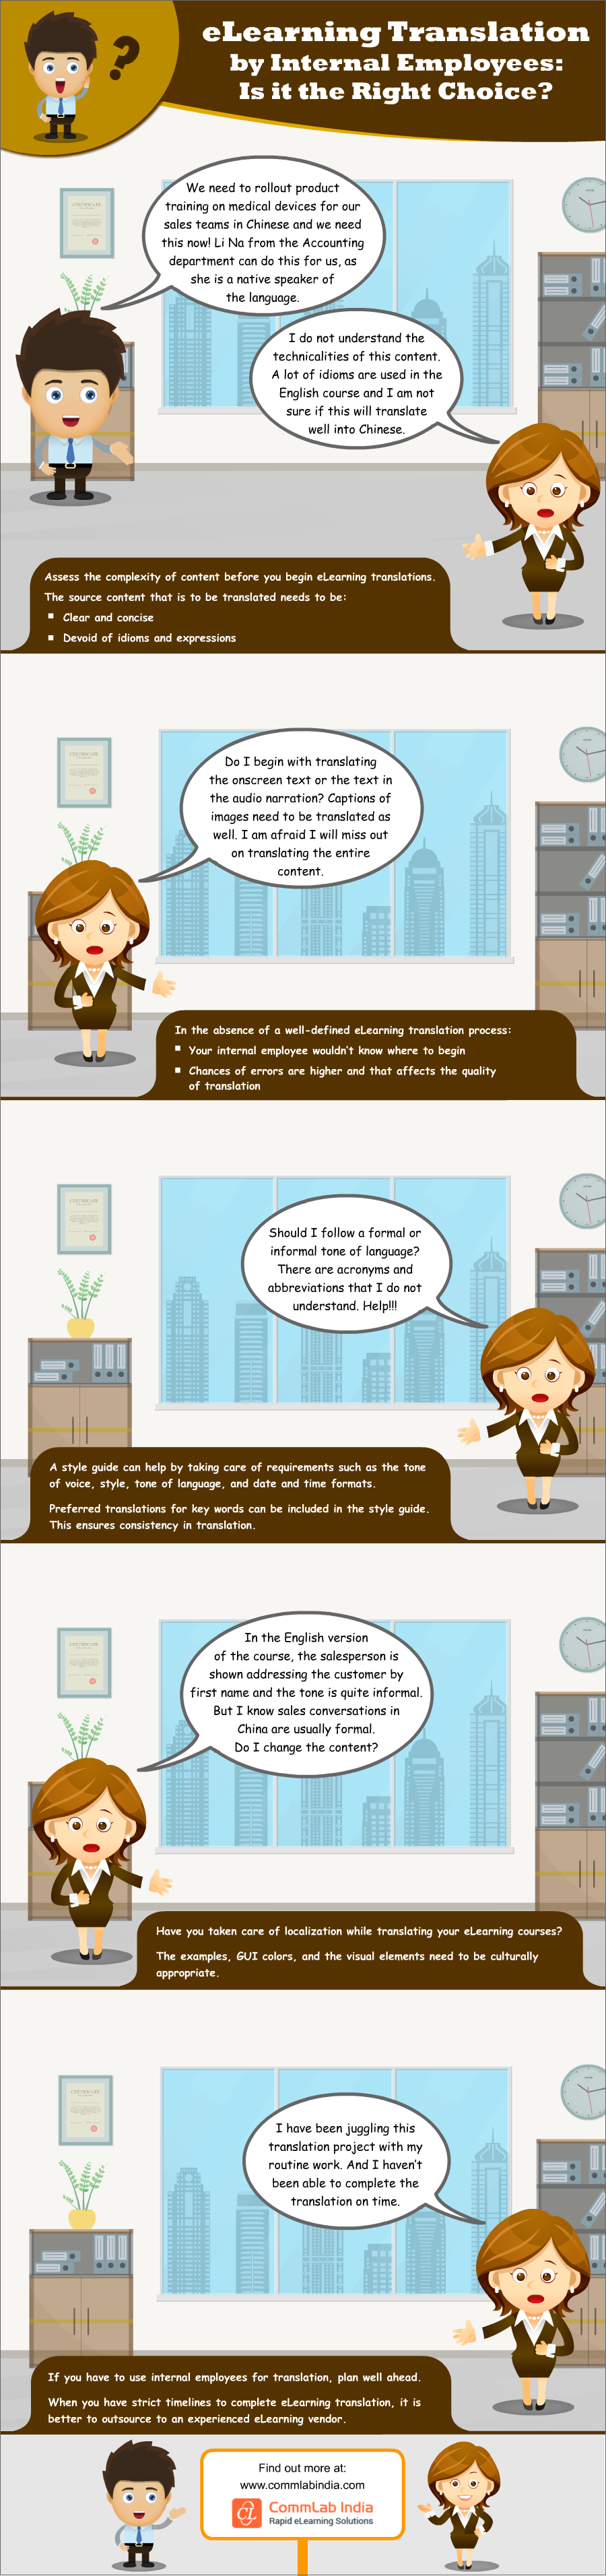 eLearning Translation by Internal Employees: Is it the Right Choice? [Infographic]